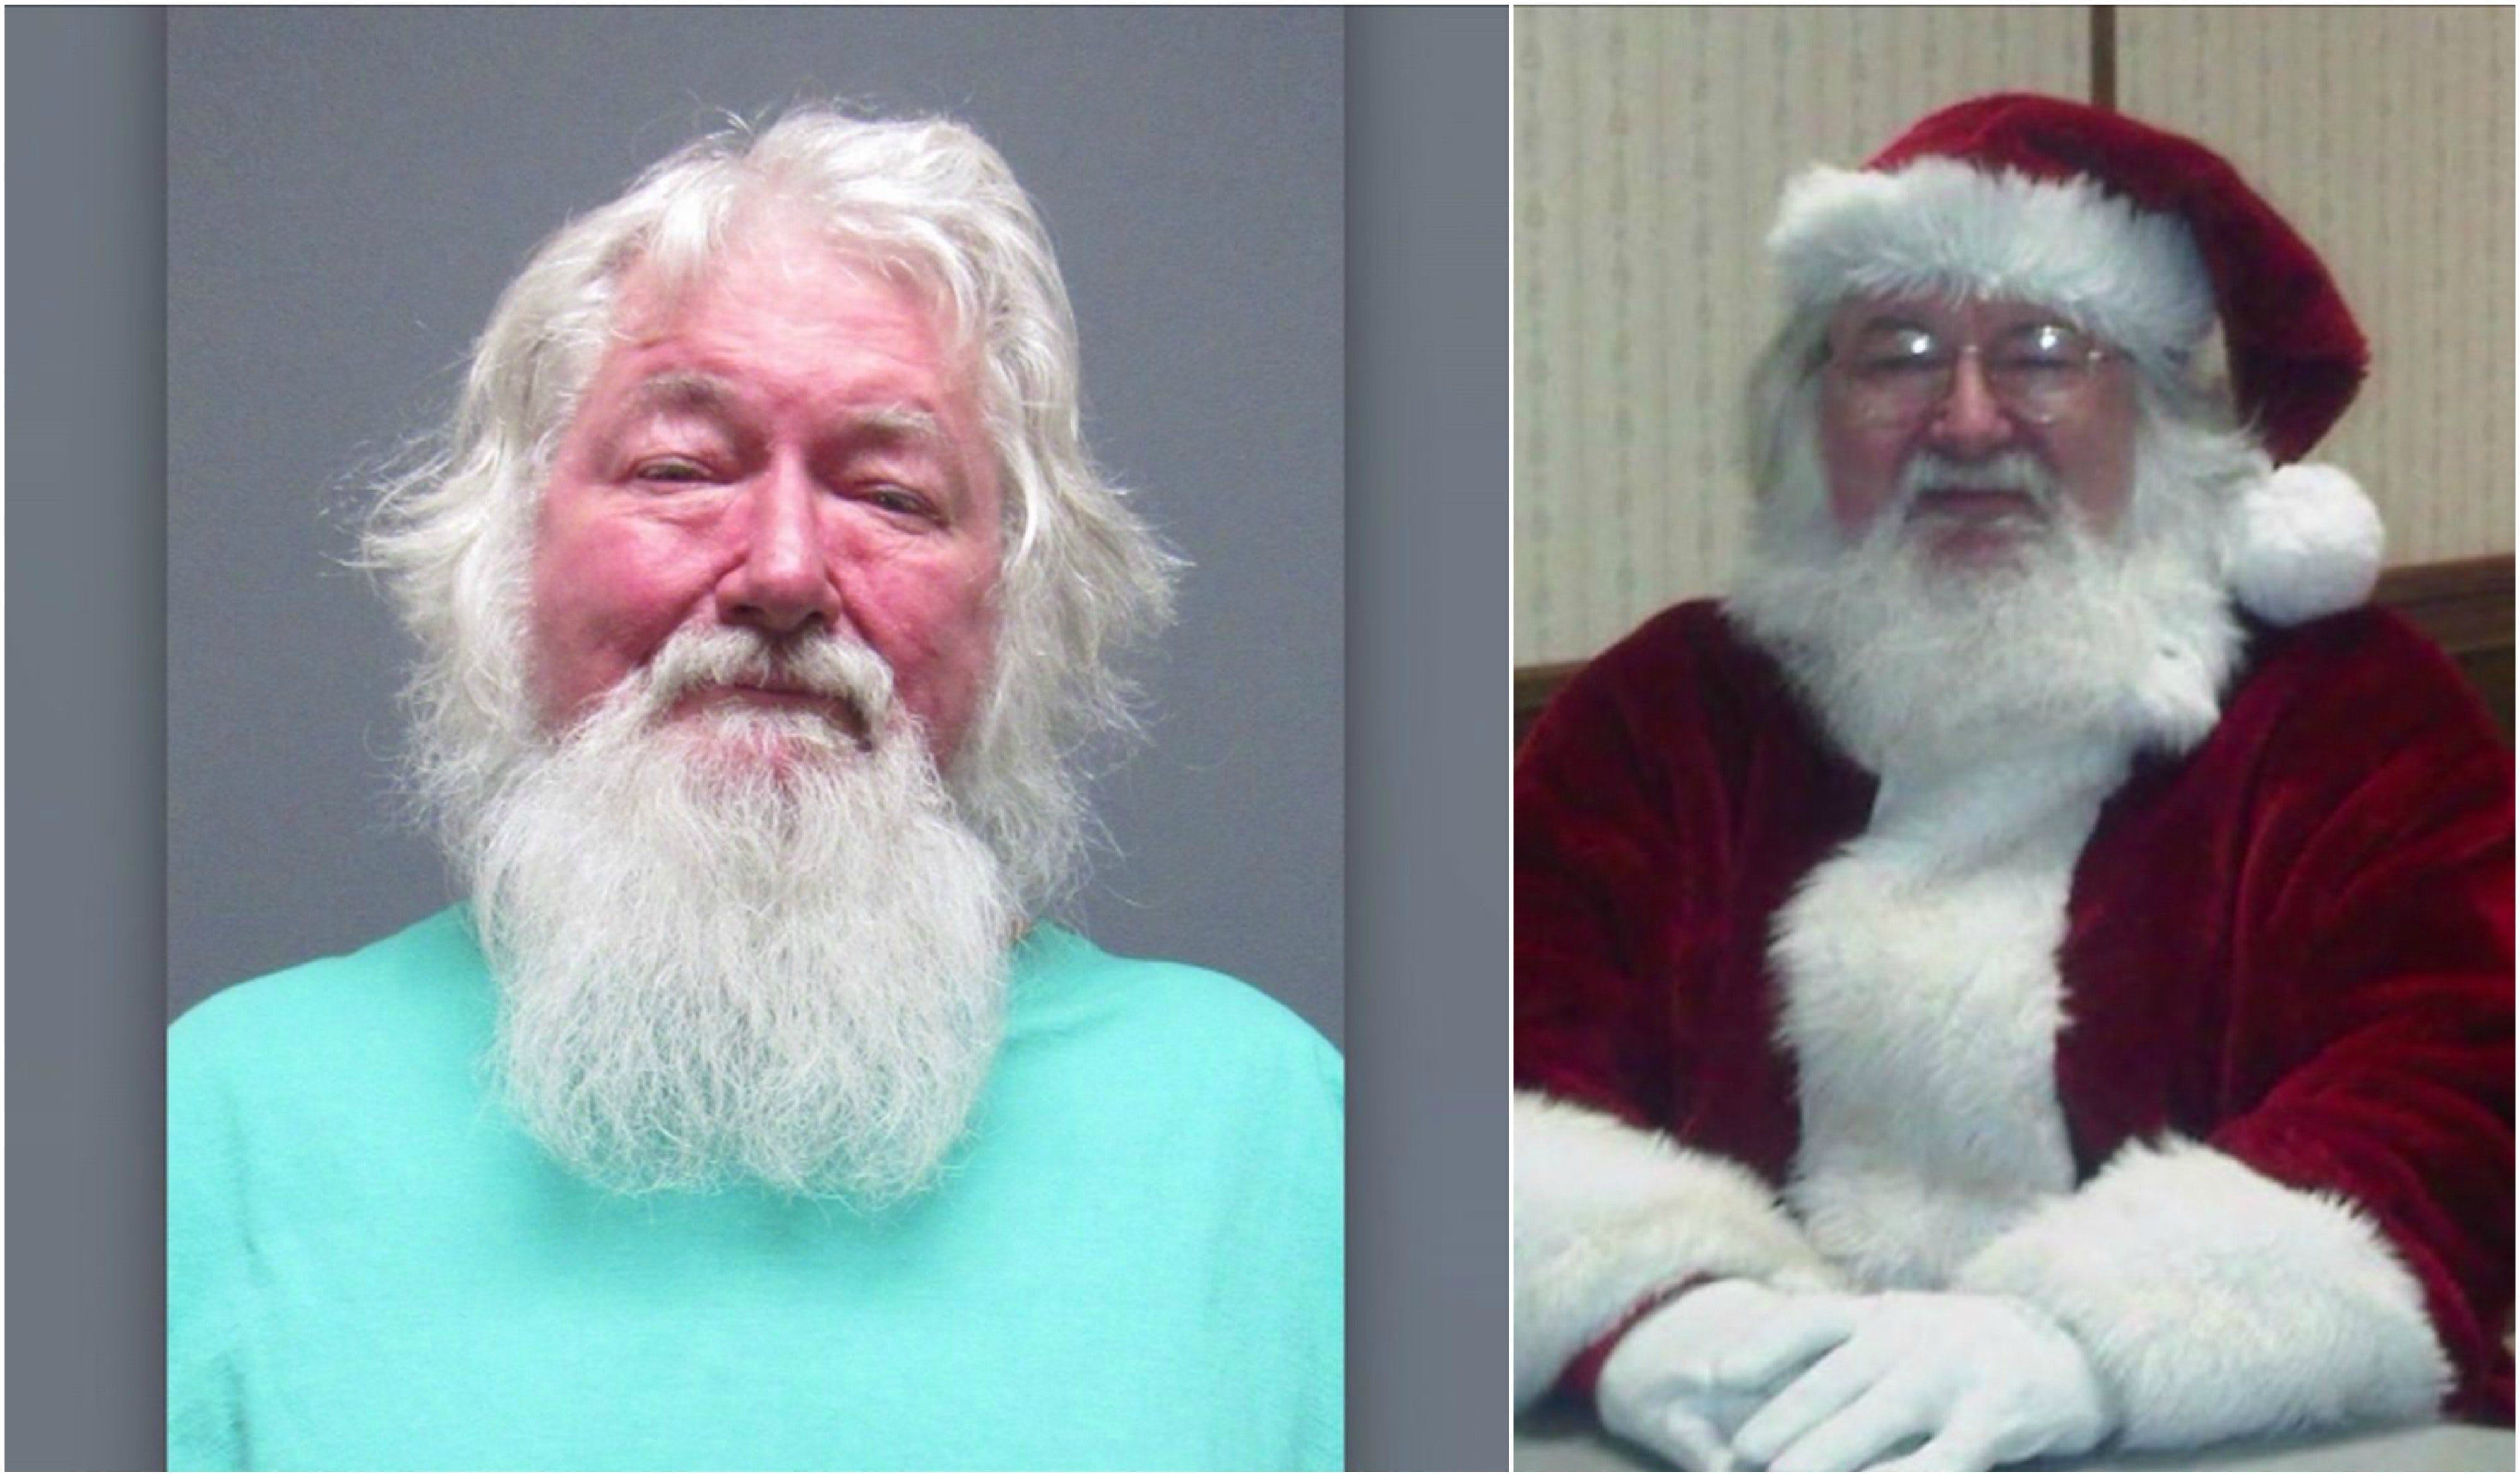 santa arrested The US Military is waving cannabis use and letting medical marijuana patients serve